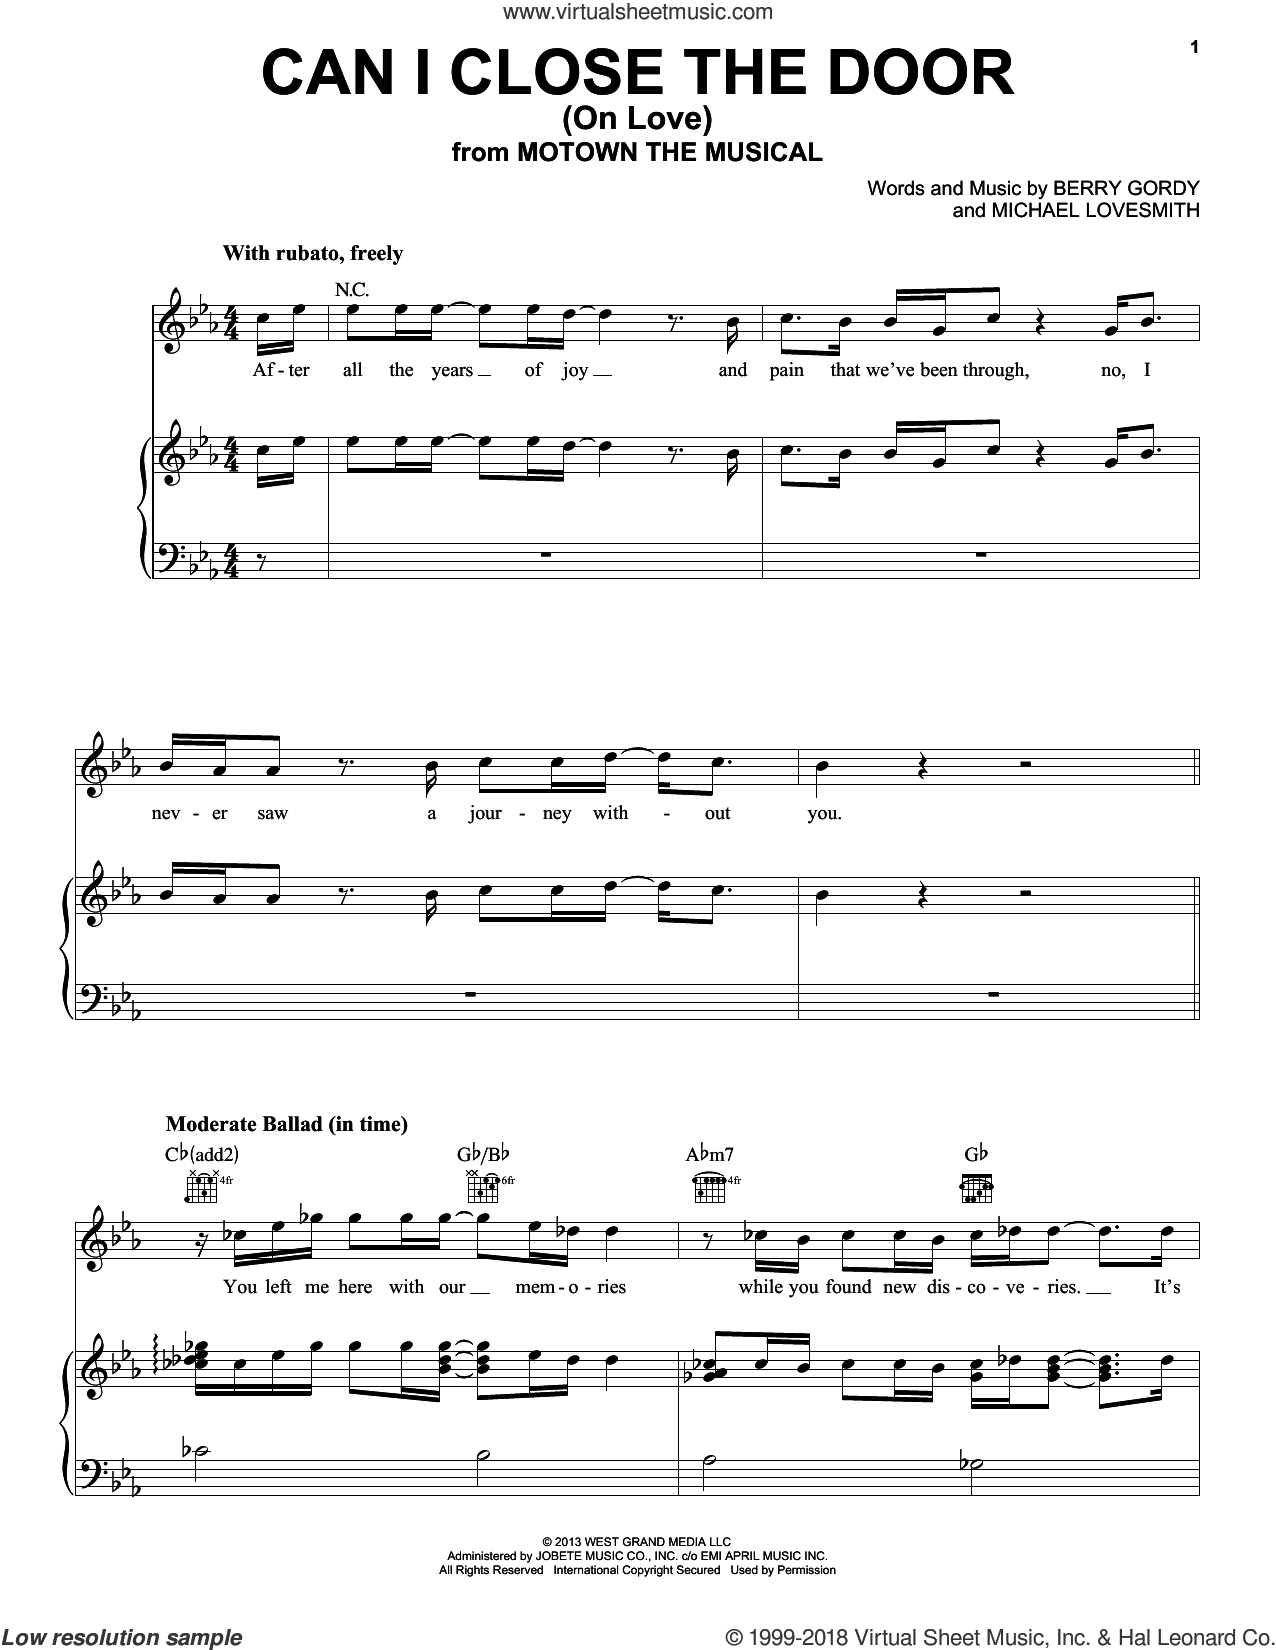 Can I Close The Door (On Love) sheet music for voice, piano or guitar by Michael Lovesmith and Berry Gordy. Score Image Preview.